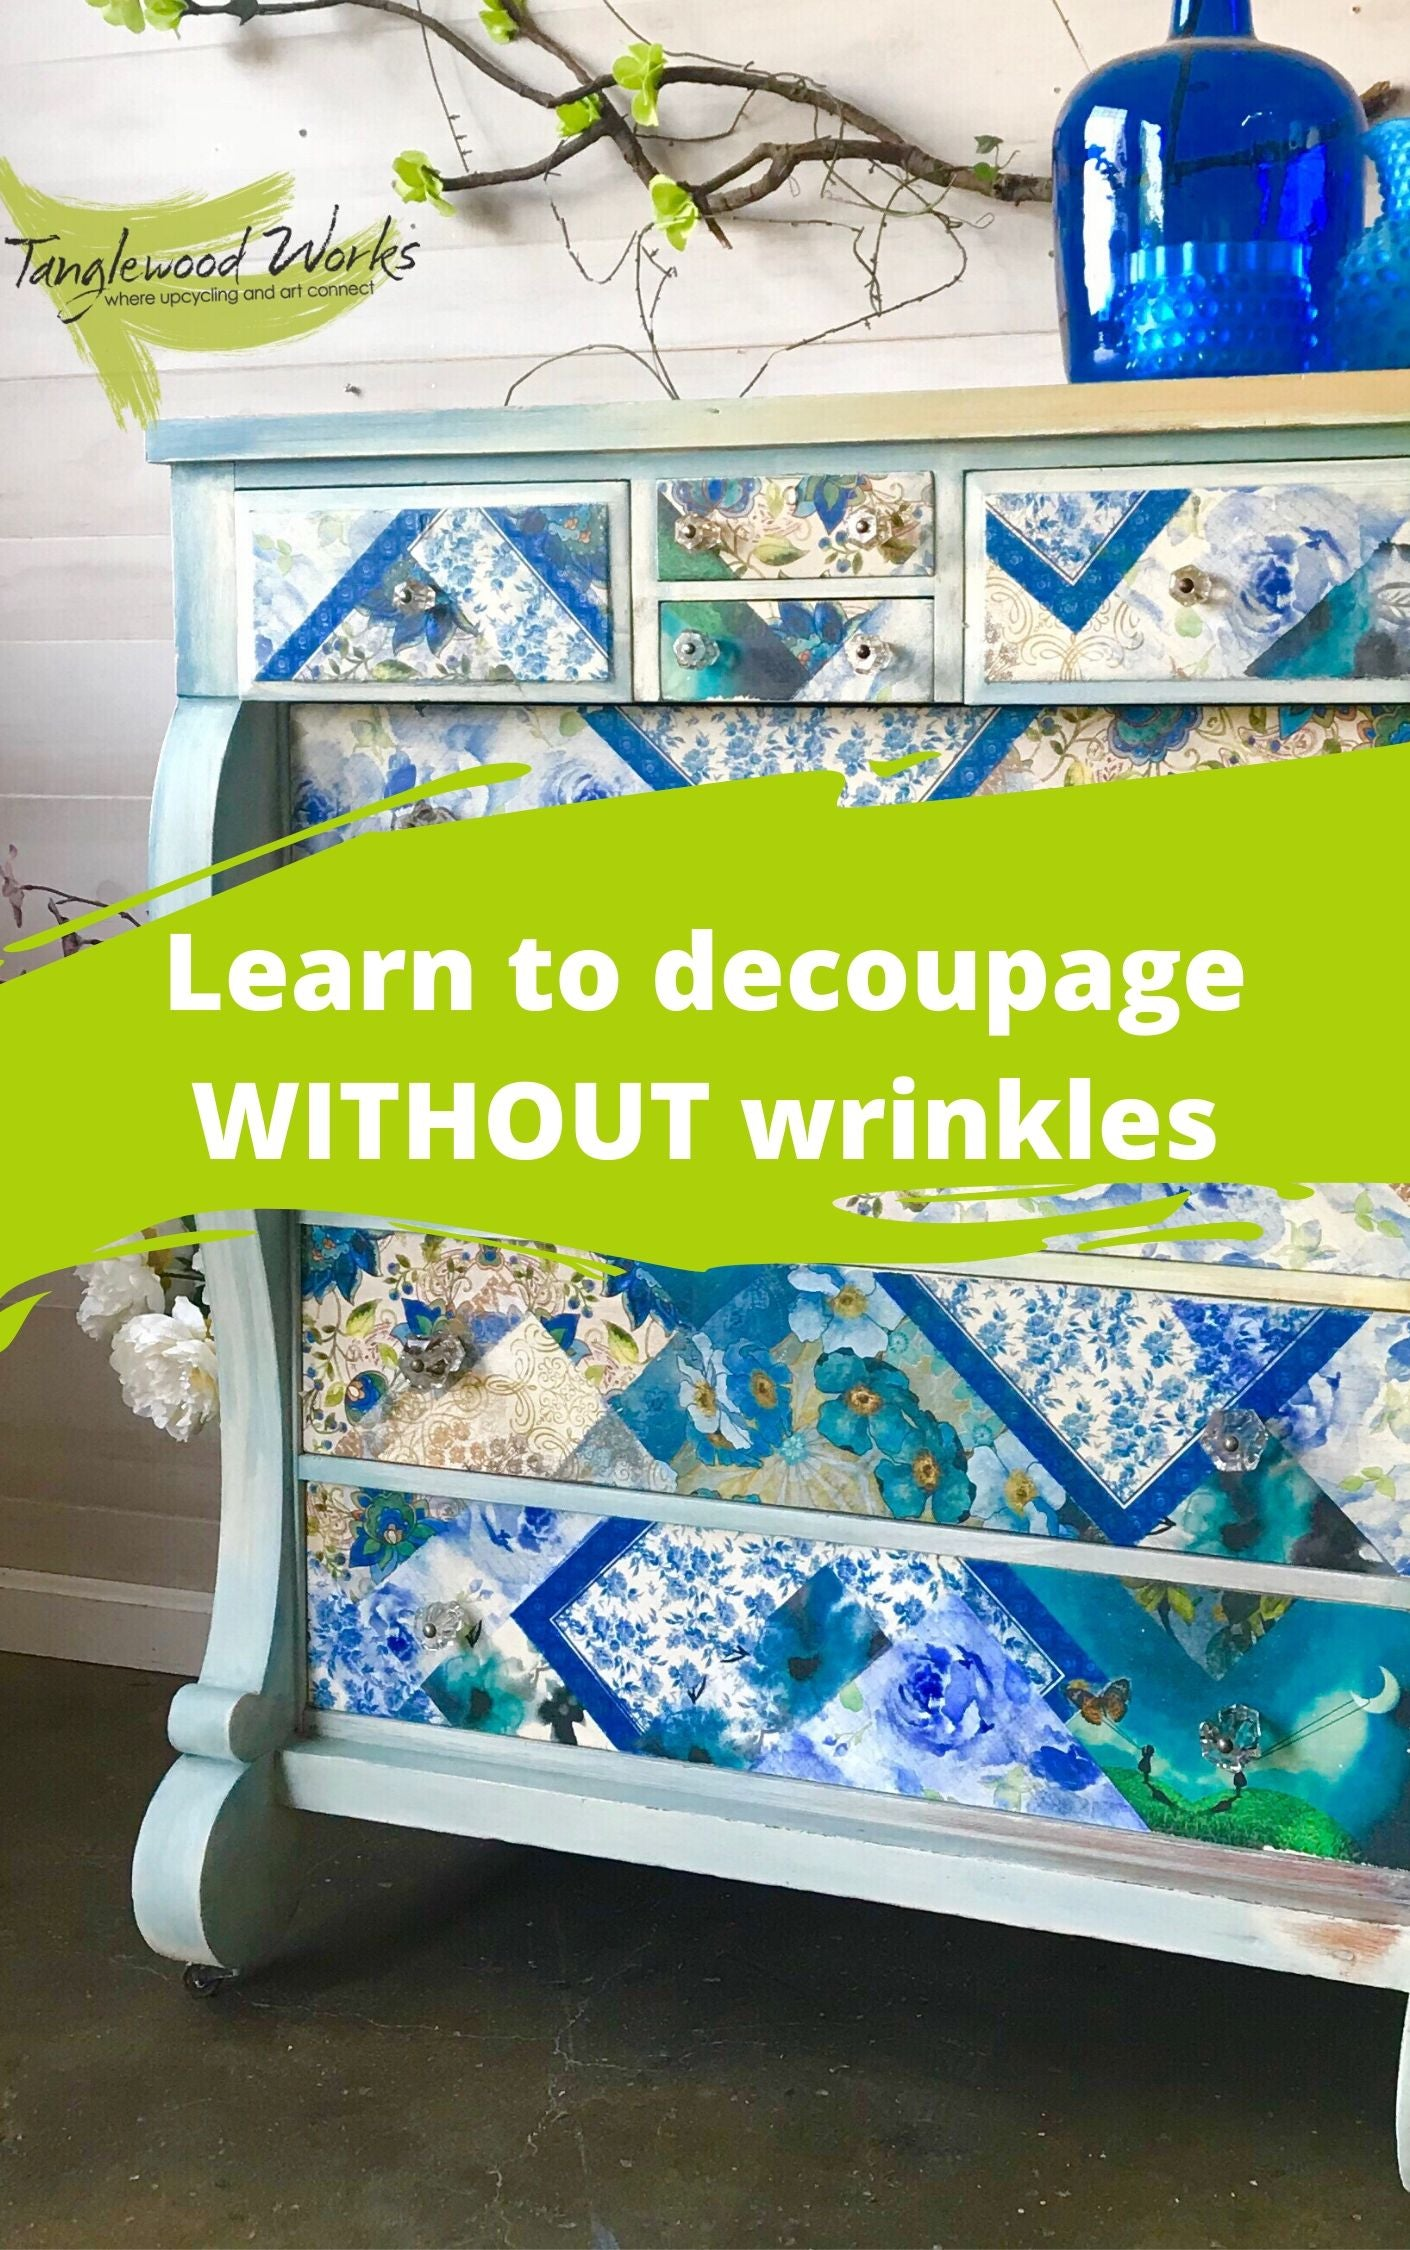 Learn how to decoupage with no wrinkles.